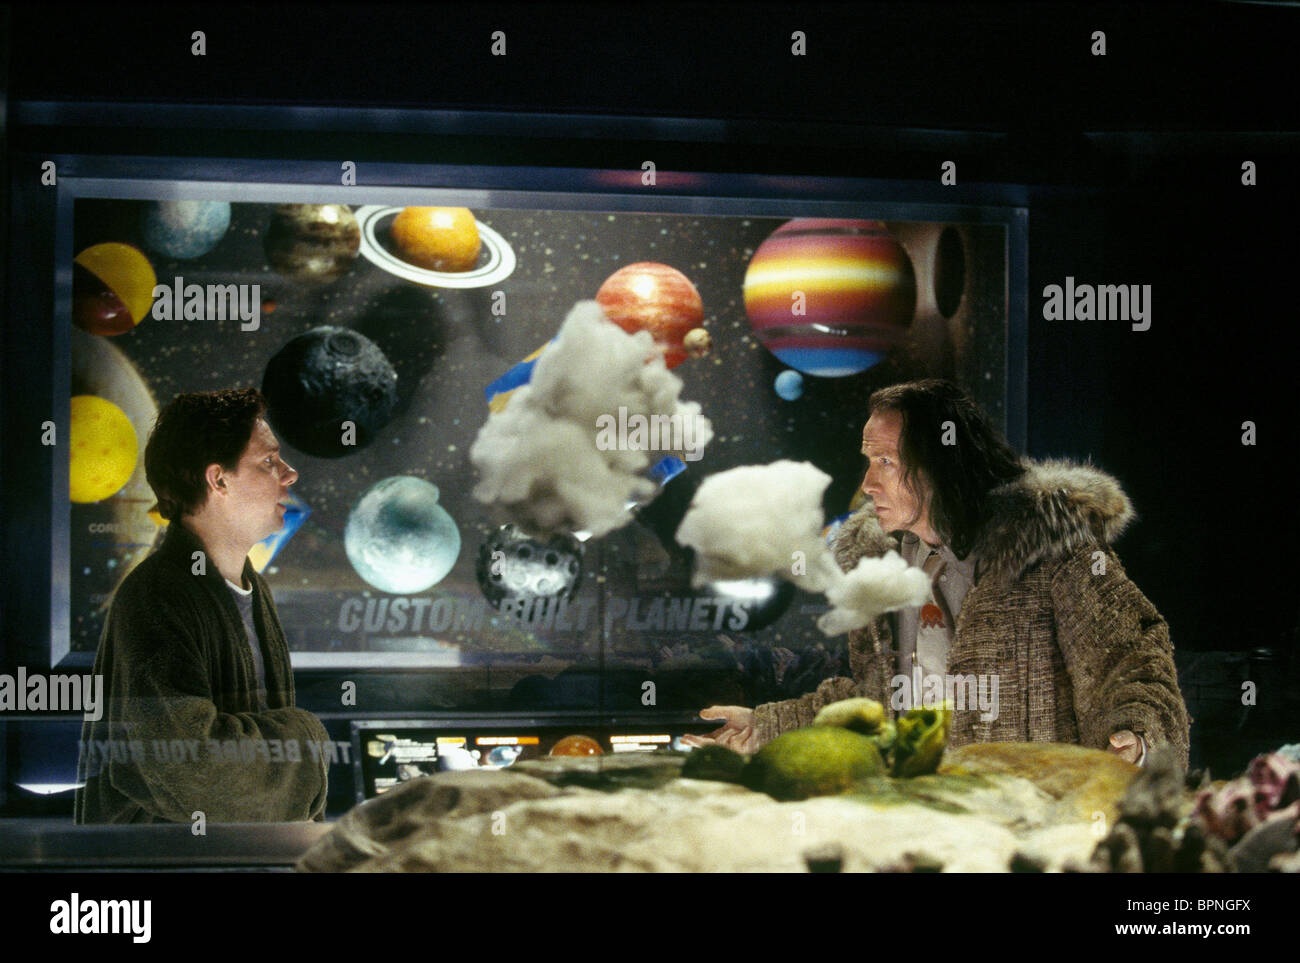 MARTIN FREEMAN & BILL NIGHY THE HITCHHIKER'S GUIDE TO THE GALAXY (2005) Stock Photo